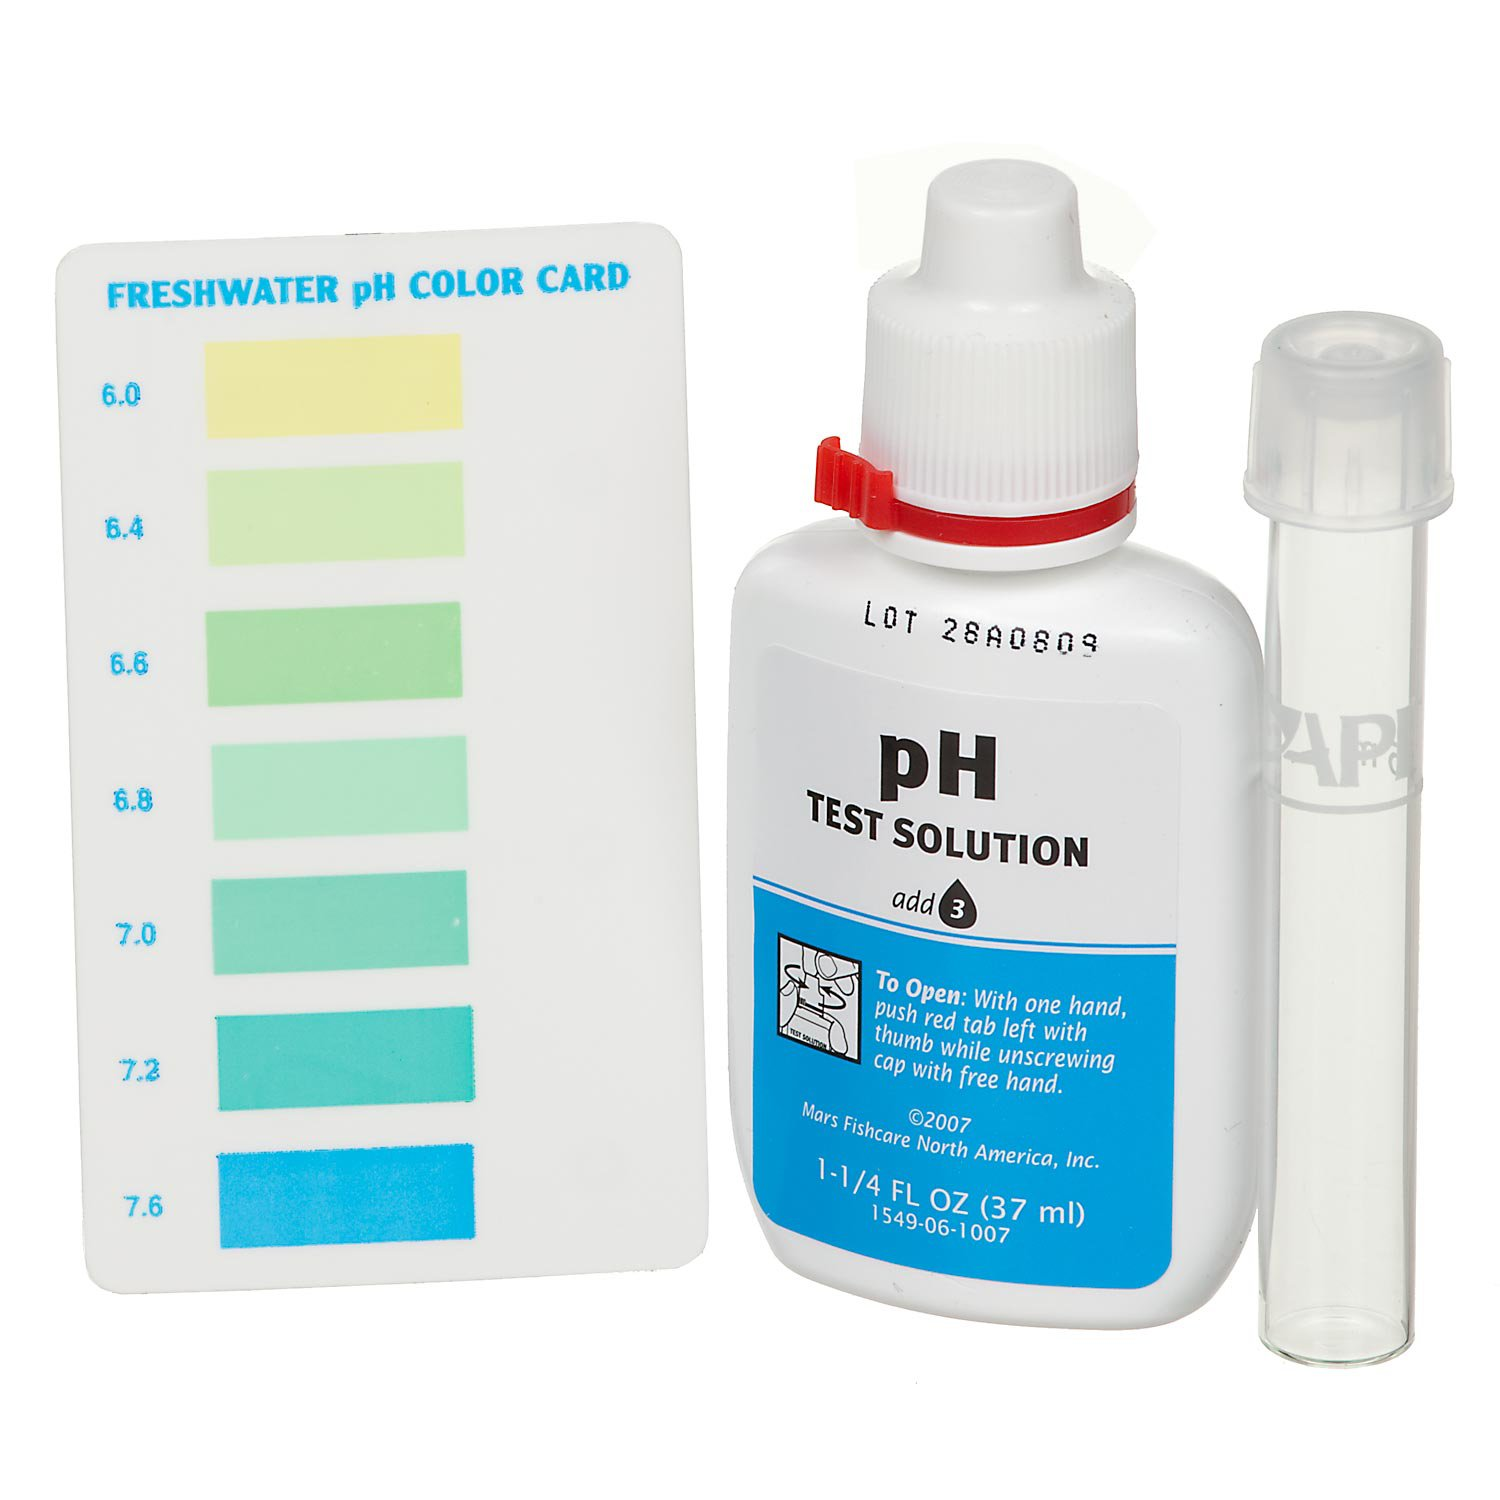 aqua one ph test kit instructions